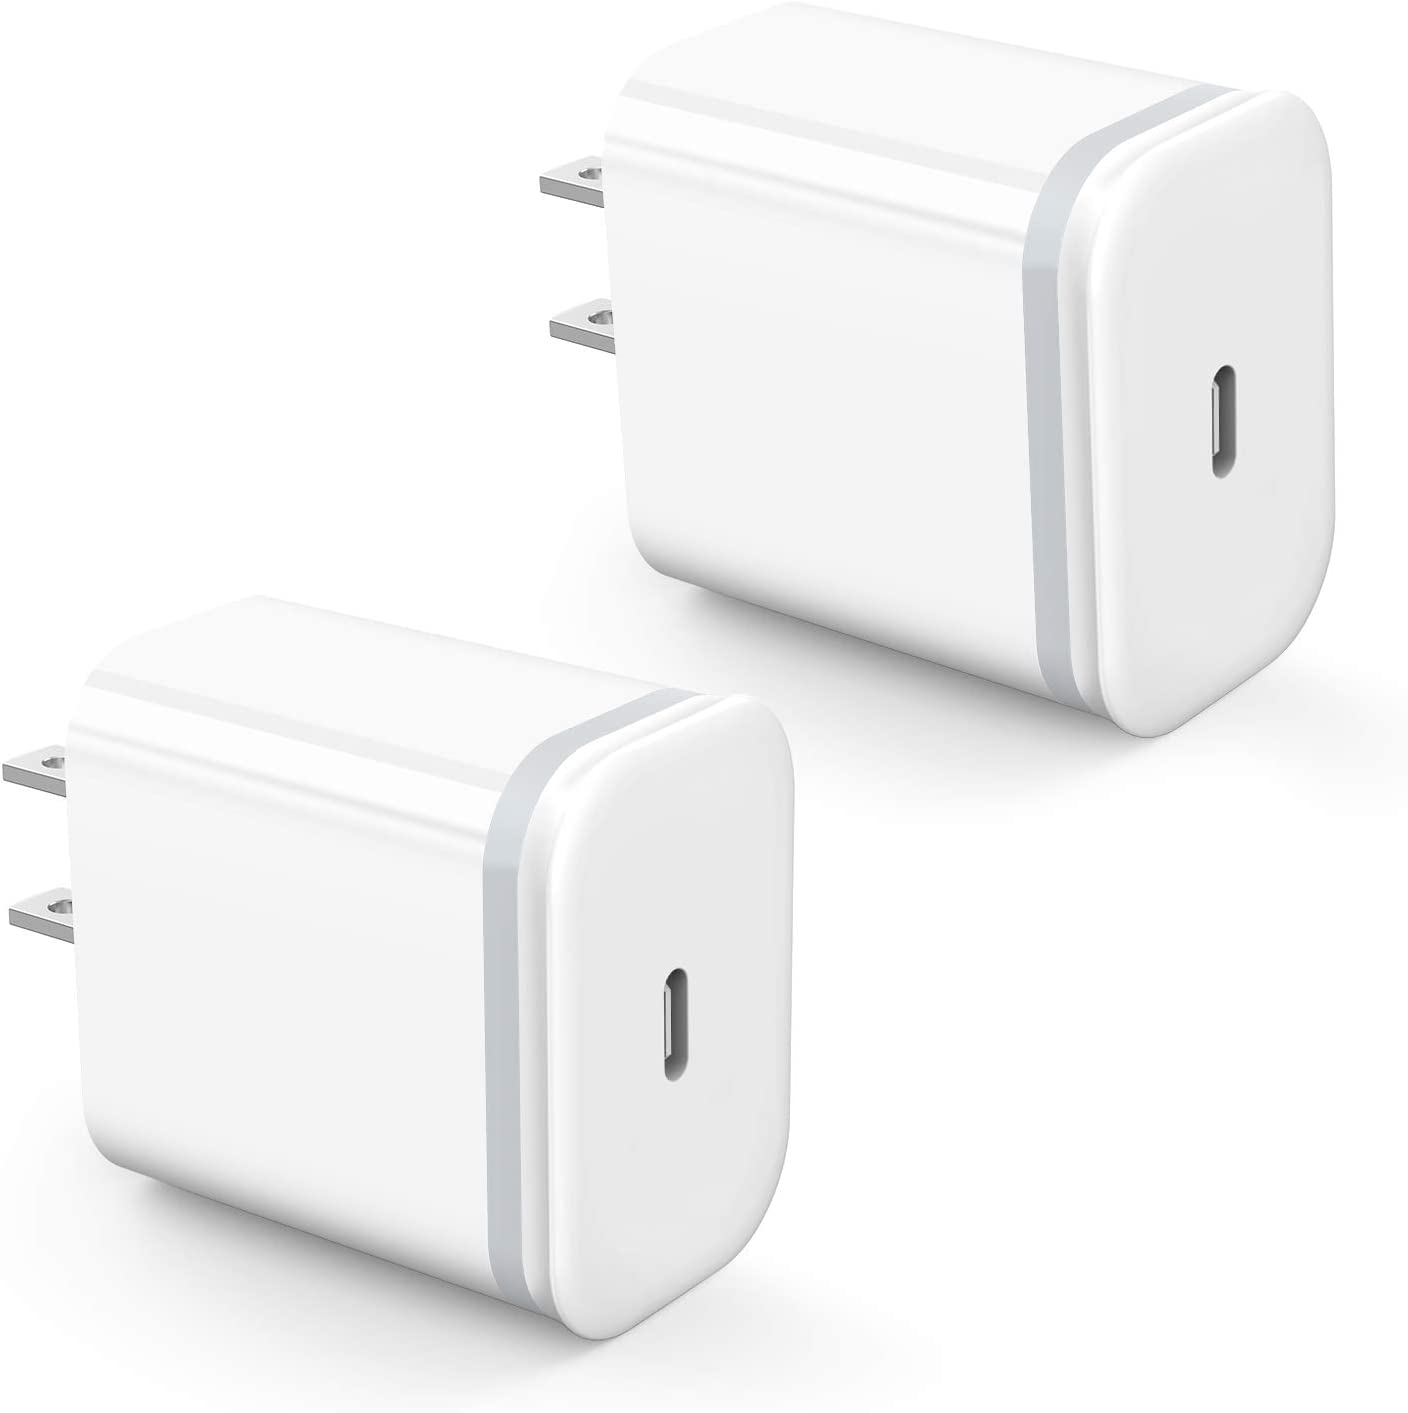 USB C Charger Adapter 2-Pack, Niluoya 18W 3.0 Type C Fast Charging Plug Cube Power Delivery Block Replacement for iPhone 11 Pro Max Xs XR X, AirPods Pro, iPad, Google Pixel 3 2 XL, Samsung, LG, Huawei